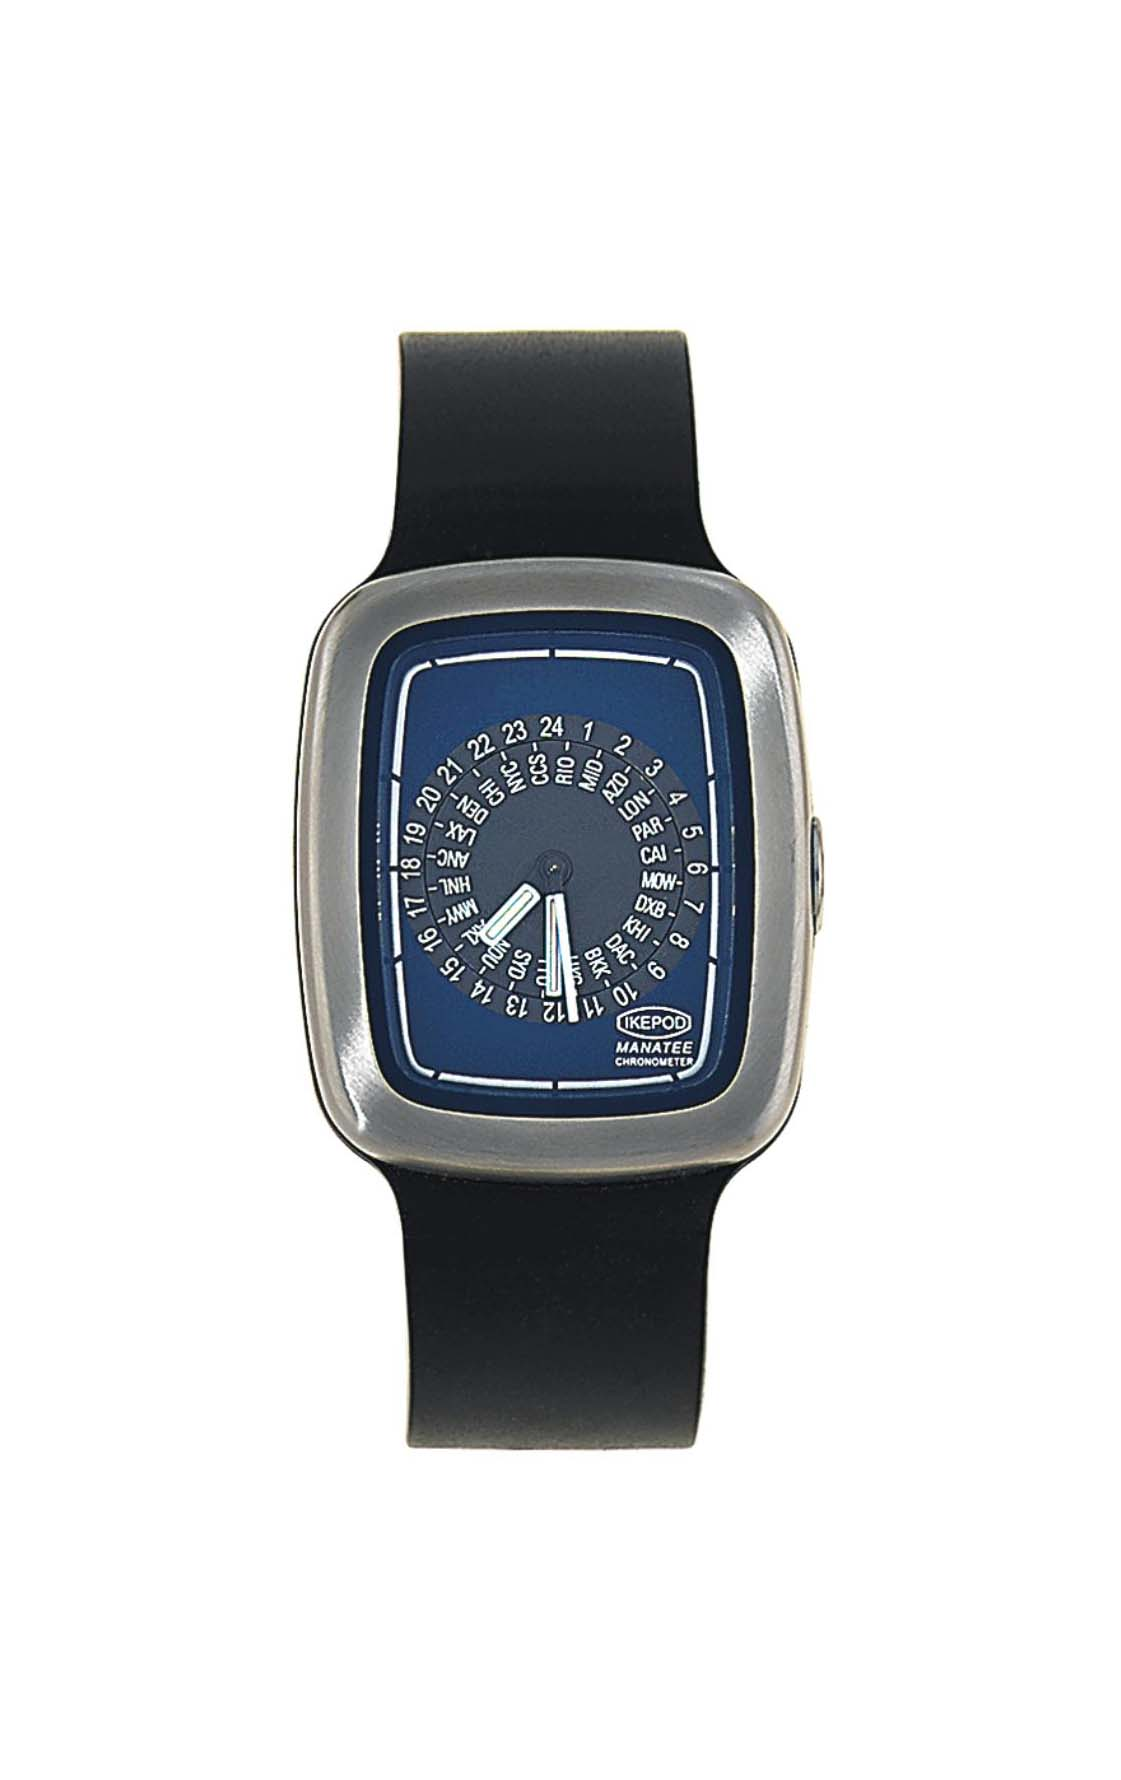 A stainless steel automatic world time 'Manatee' limited edition wristwatch, by Ikepod